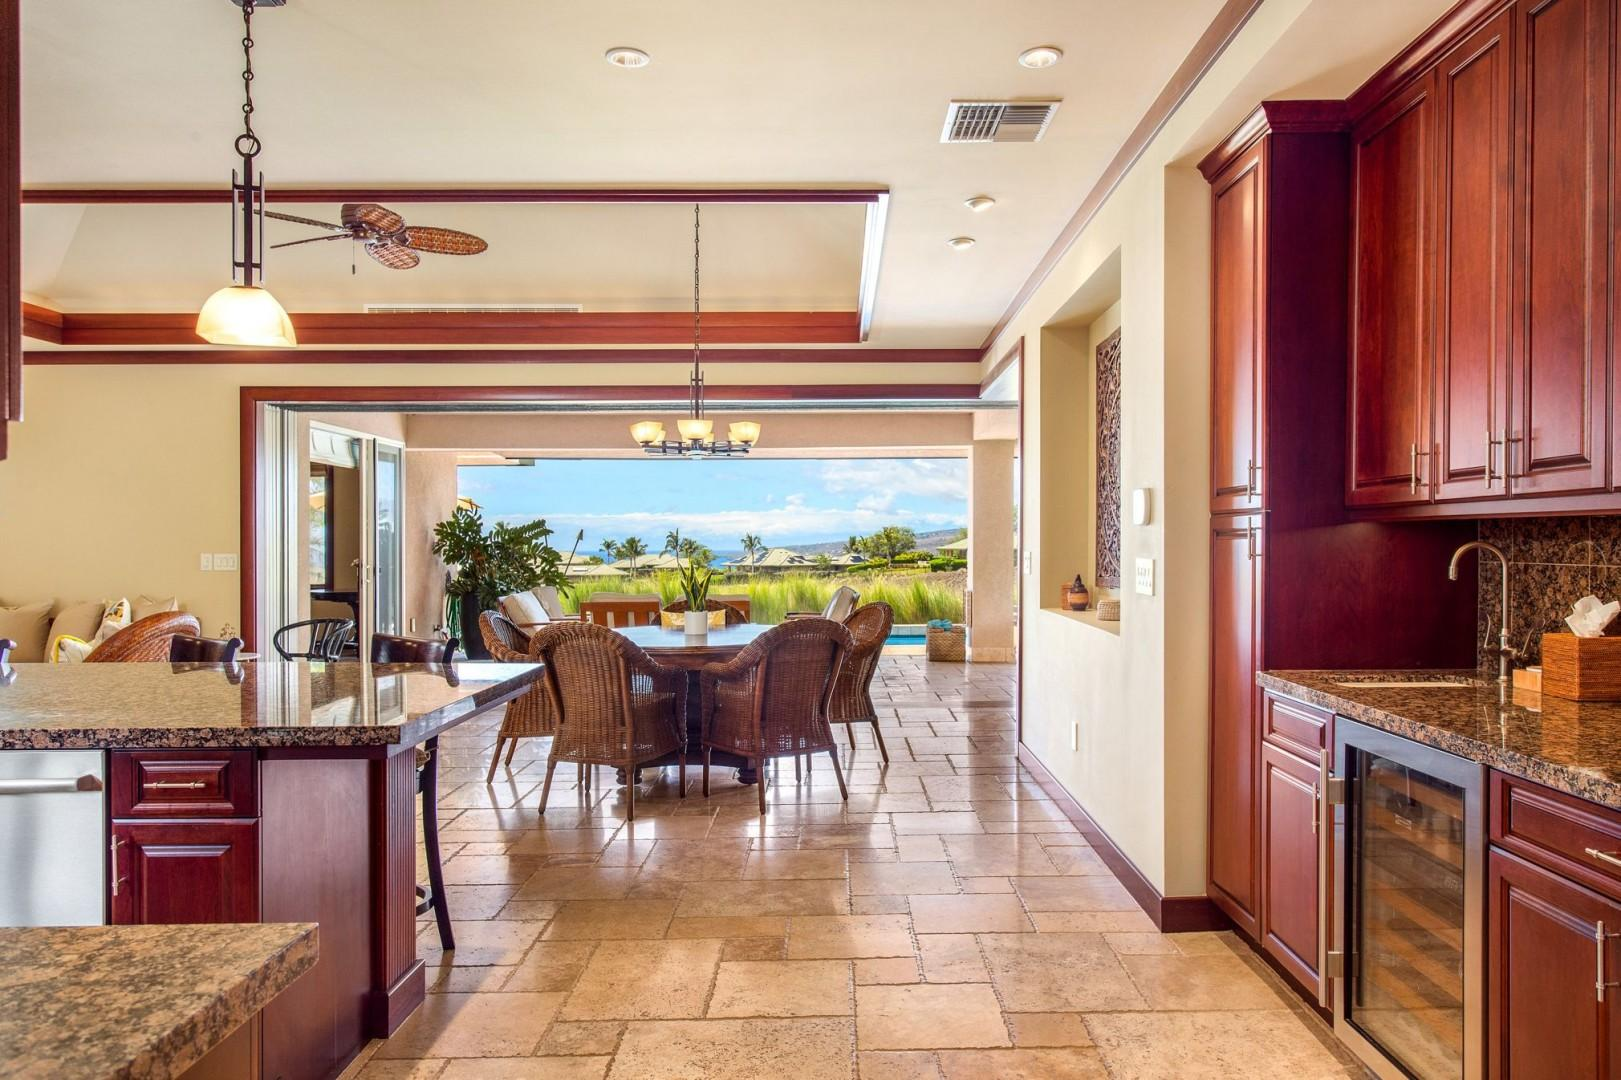 View of dining area from kitchen, with floor to ceiling pocket doors to the lanai just beyond.